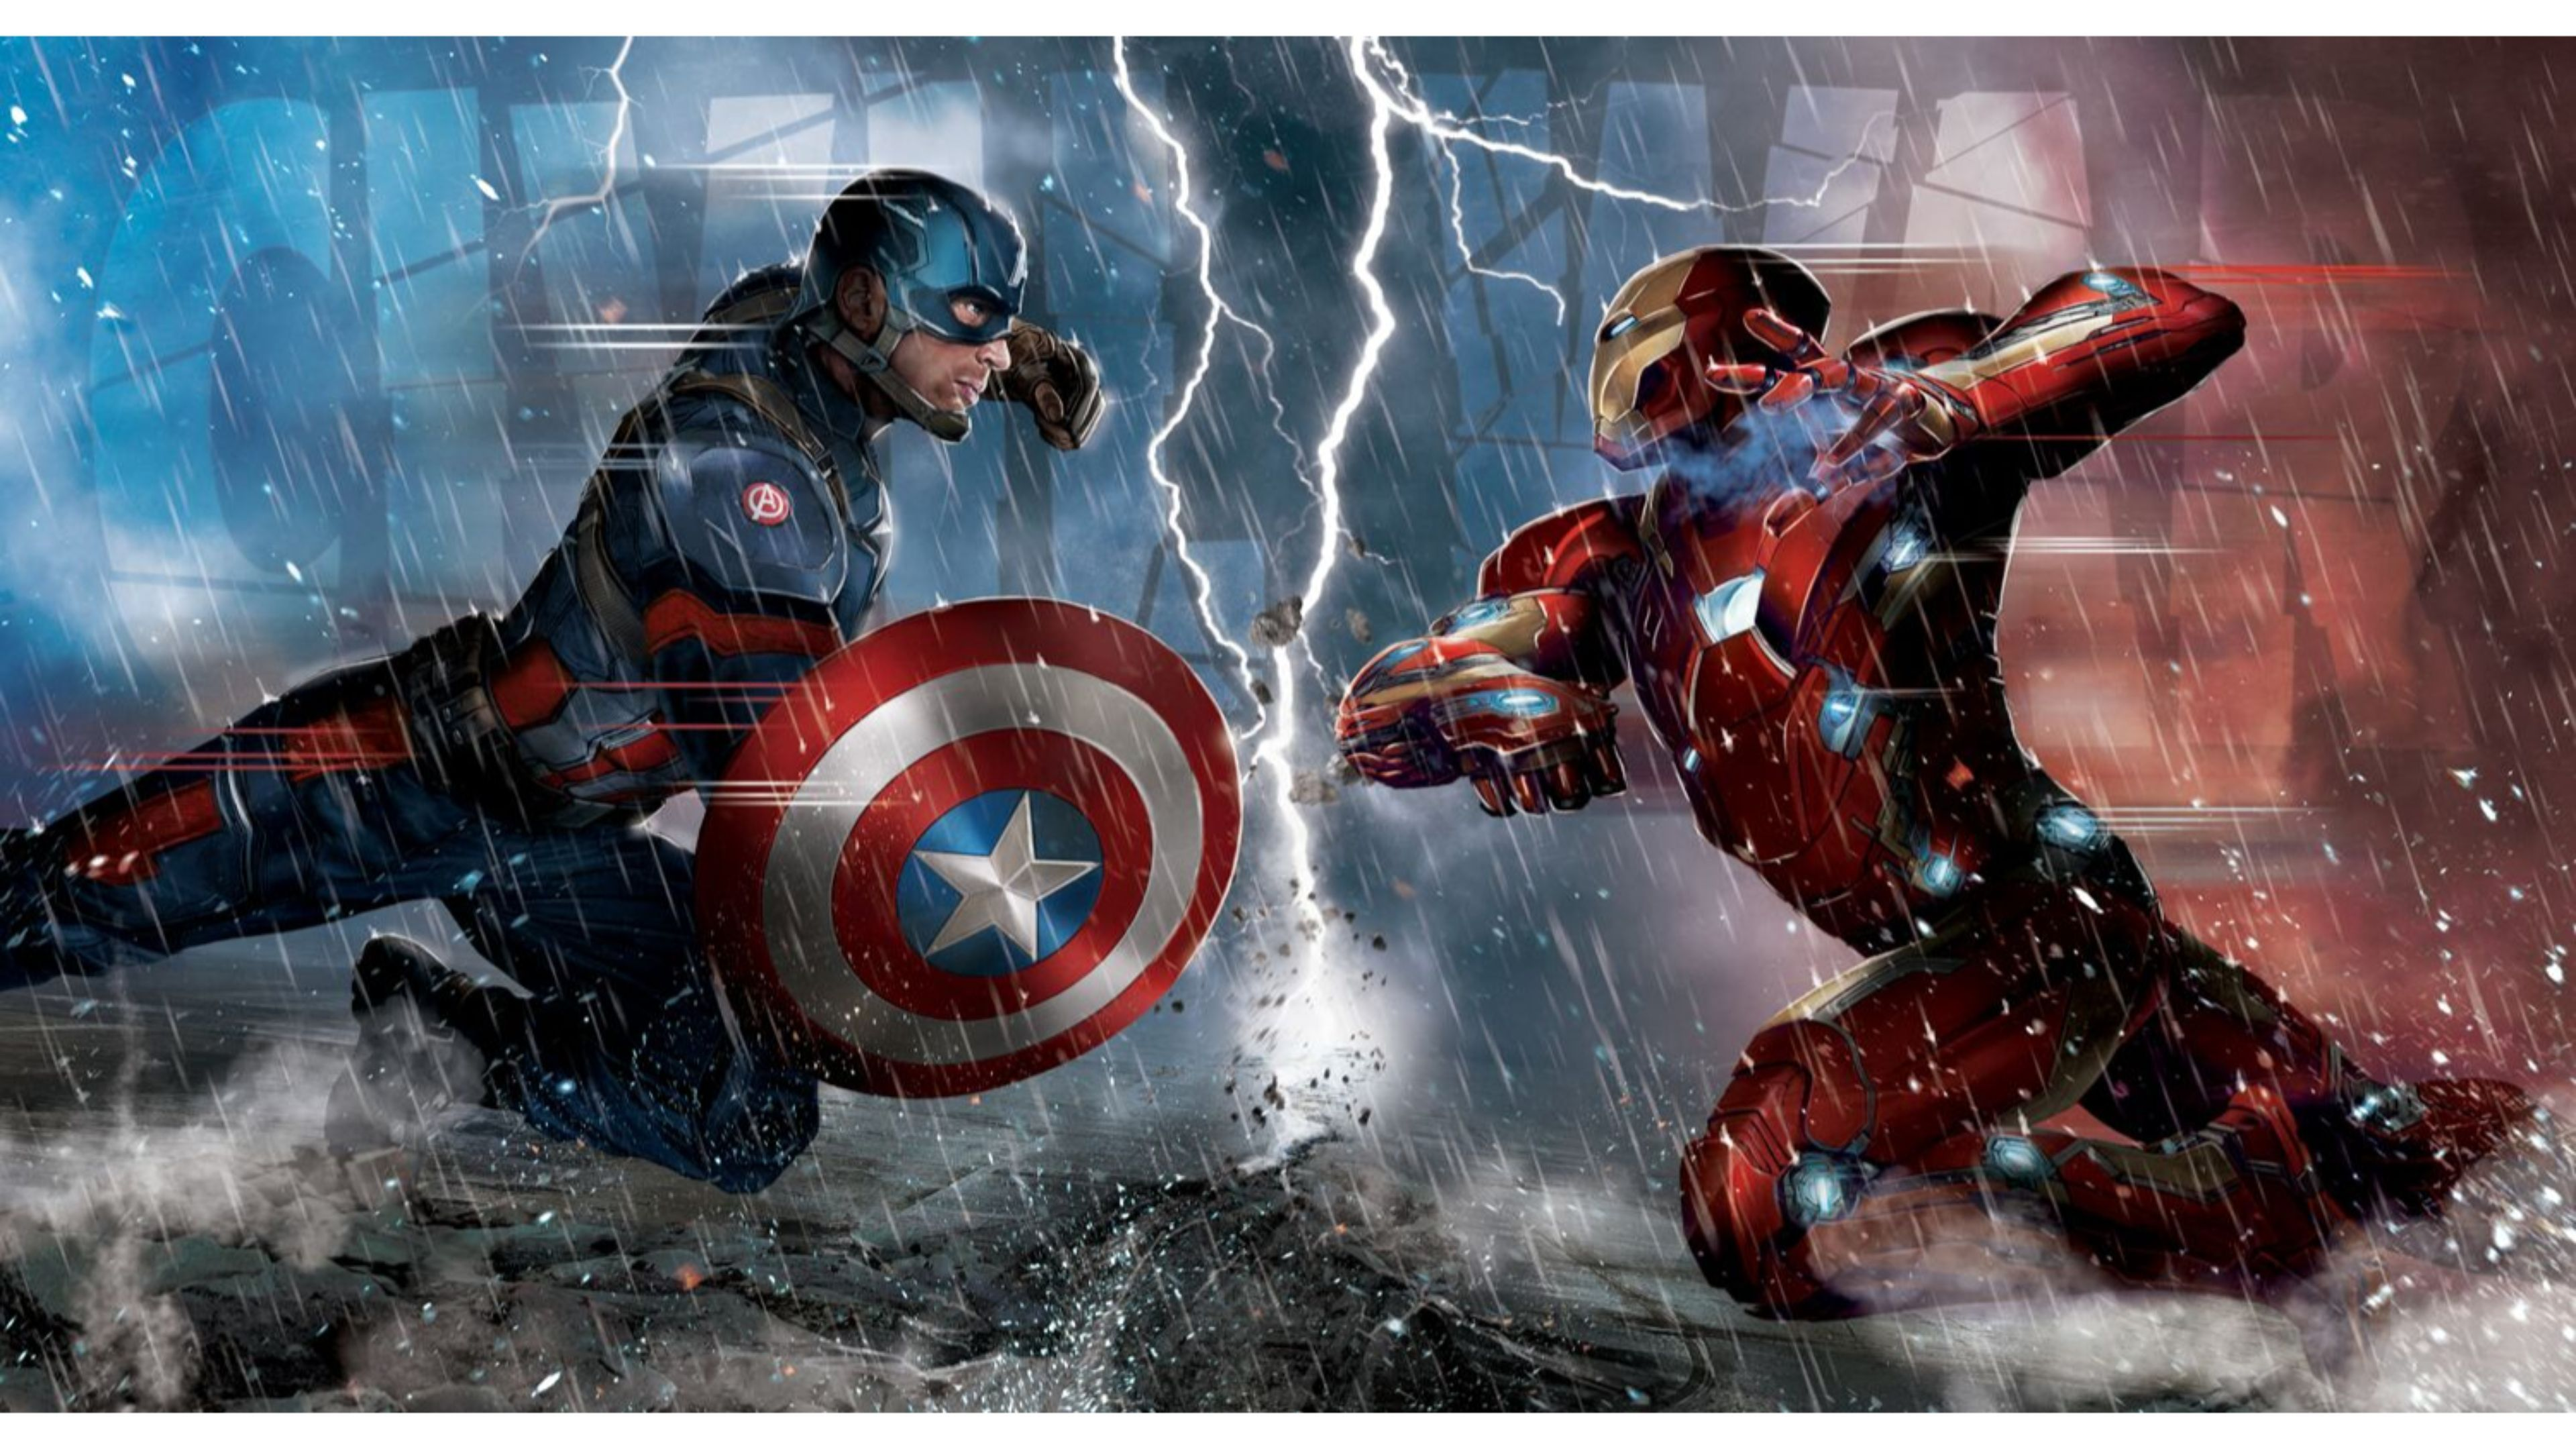 Captain America 2017 Wallpaper Marvel Captain America Civil War Iron Man Vs Captain America Captain America Civil